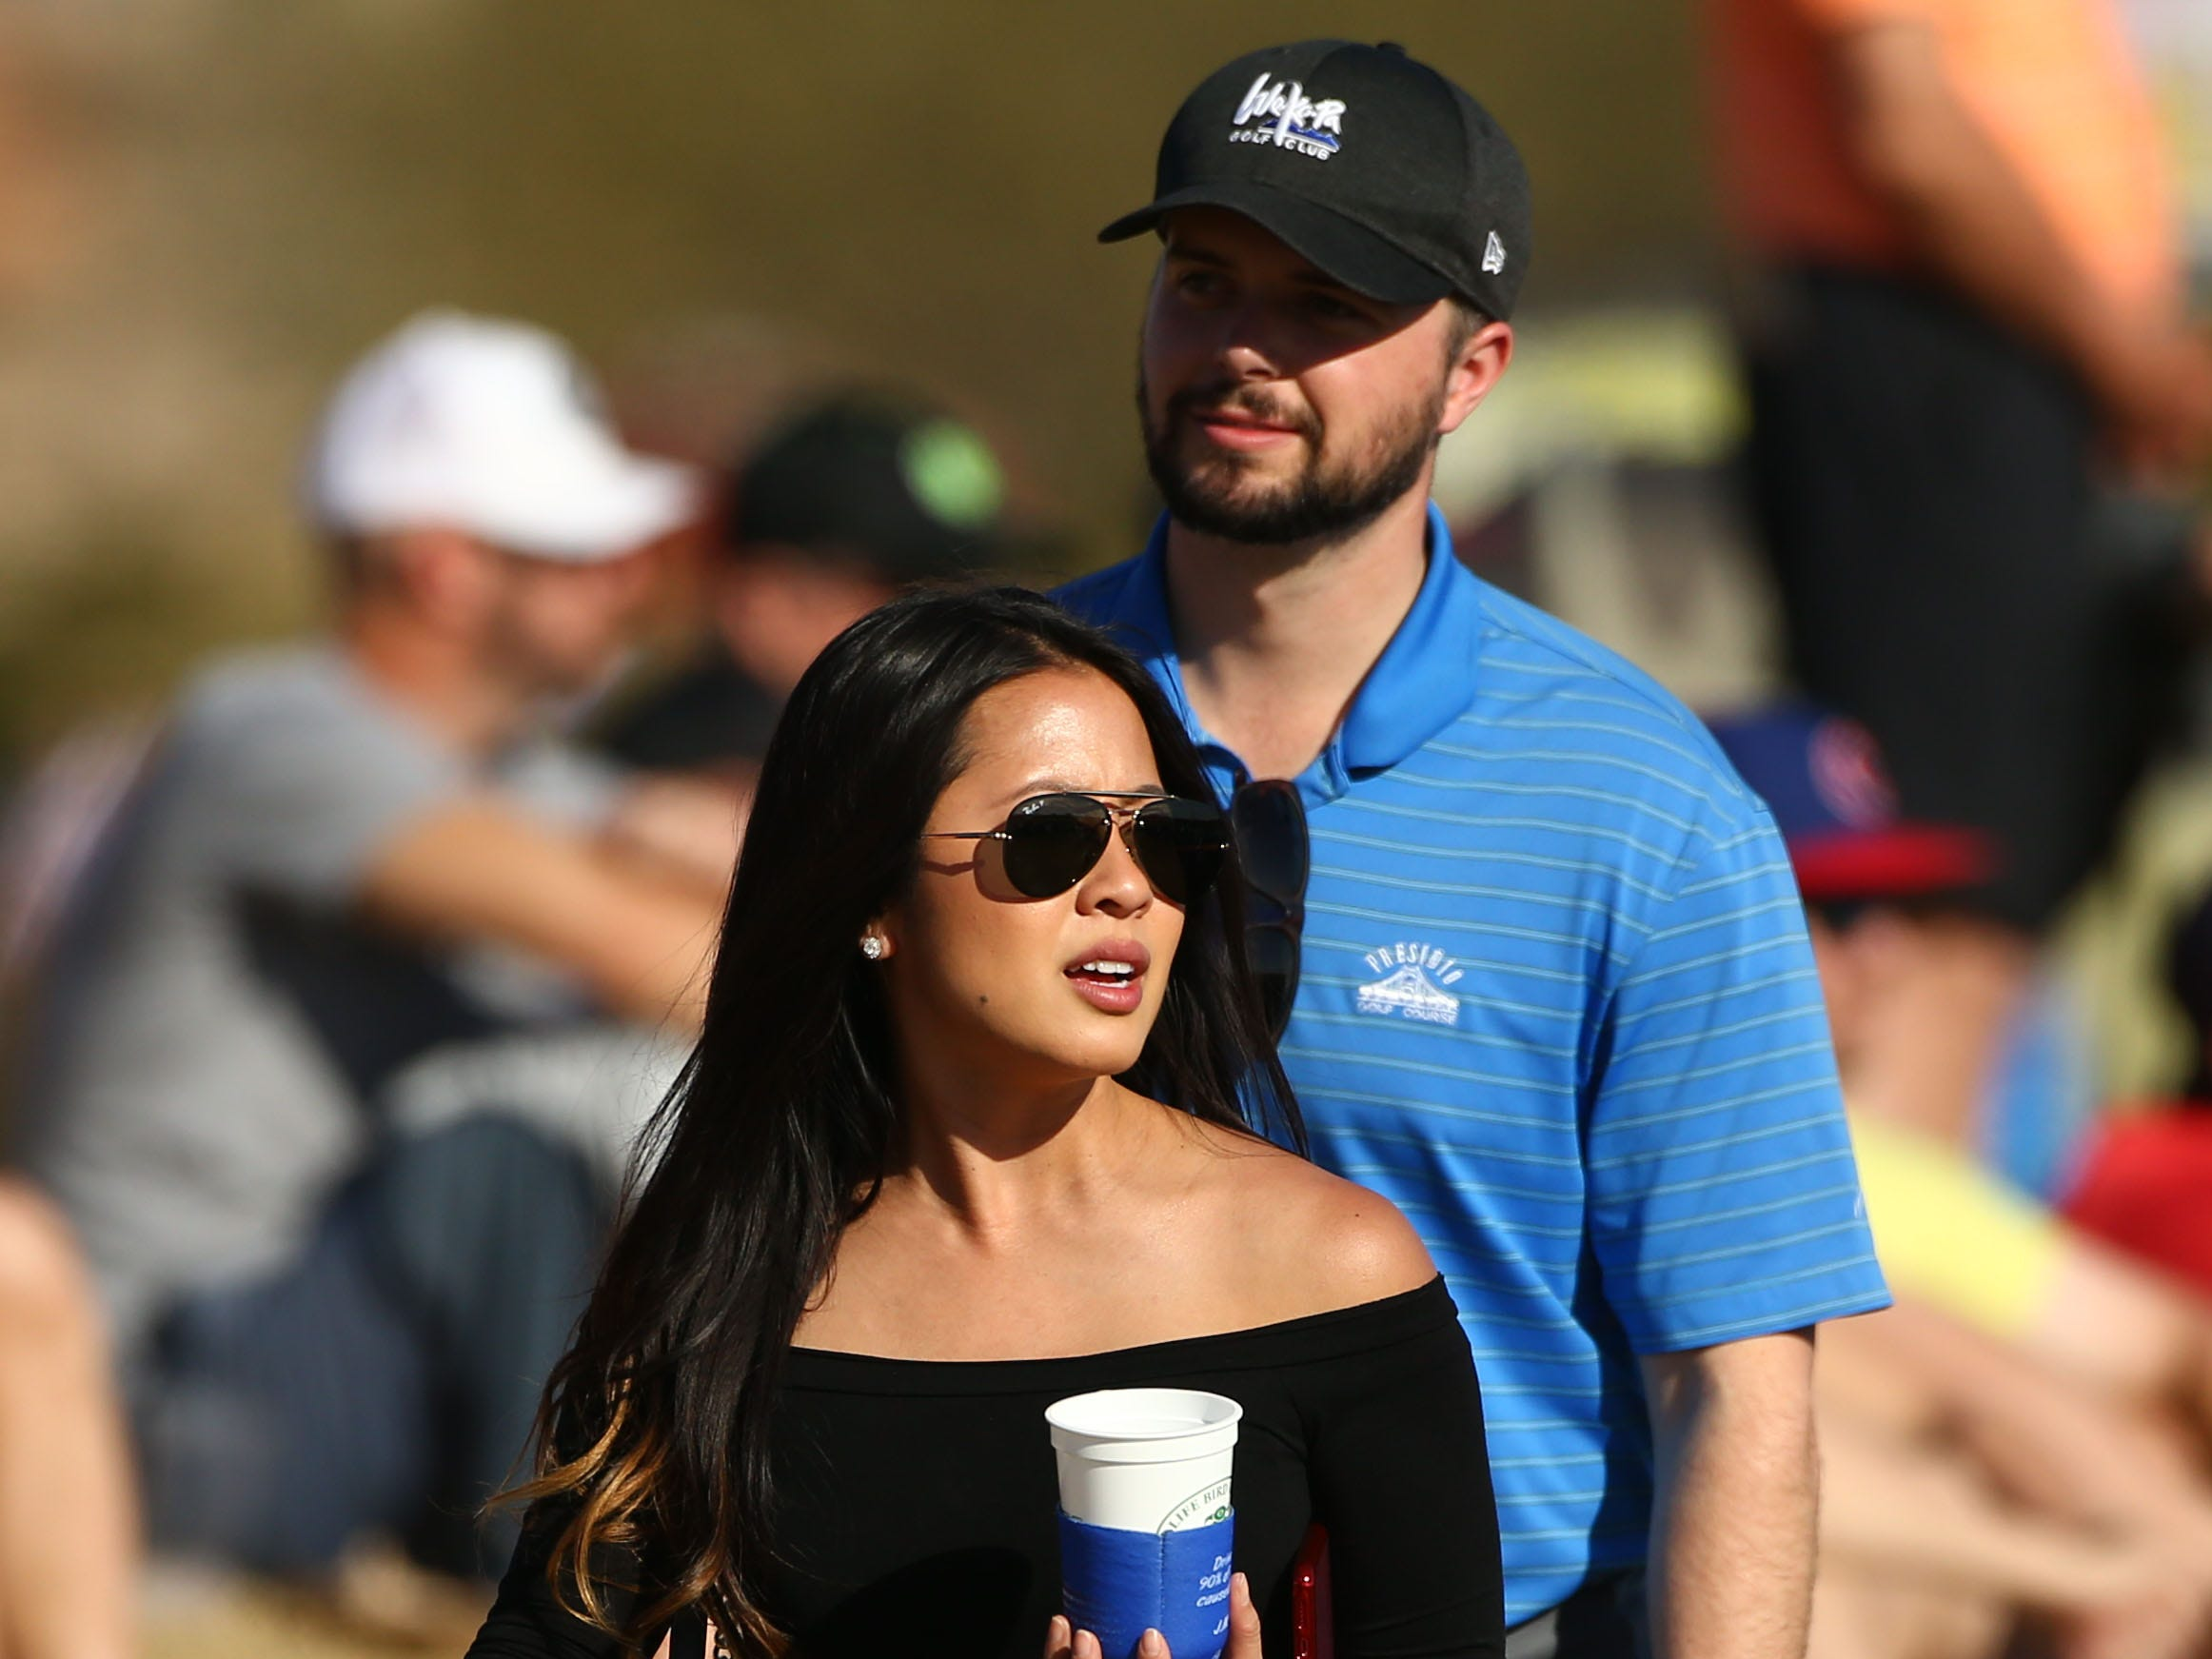 Spectator walks on the 12th hole during second round action on Feb. 1 during the Waste Management Phoenix Open at the TPC Scottsdale Stadium Course.